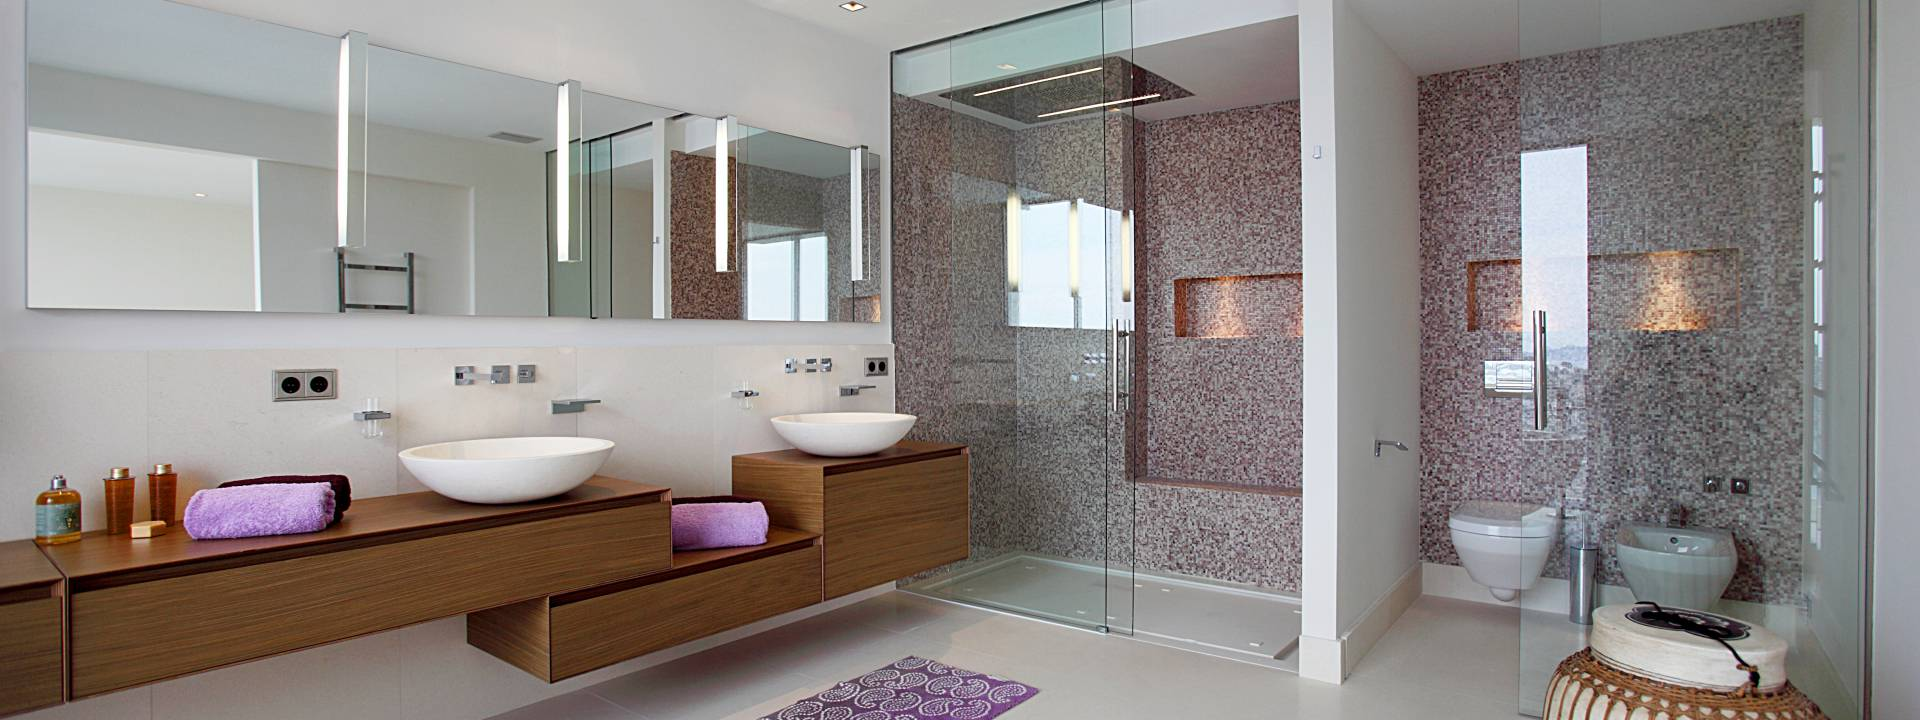 Luxury-villa-Mallorca-bathroom-mosaic-Sicis-Interior-design